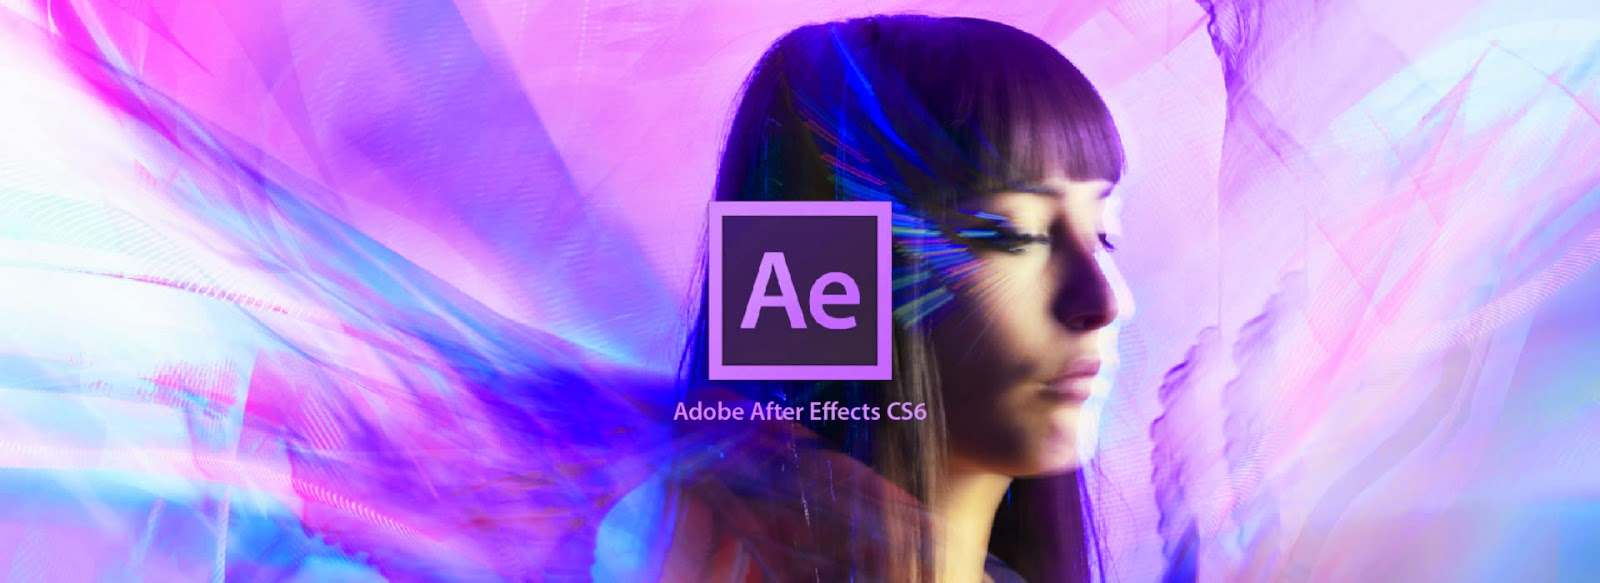 adobe after effects cs6 crack german 64 bit